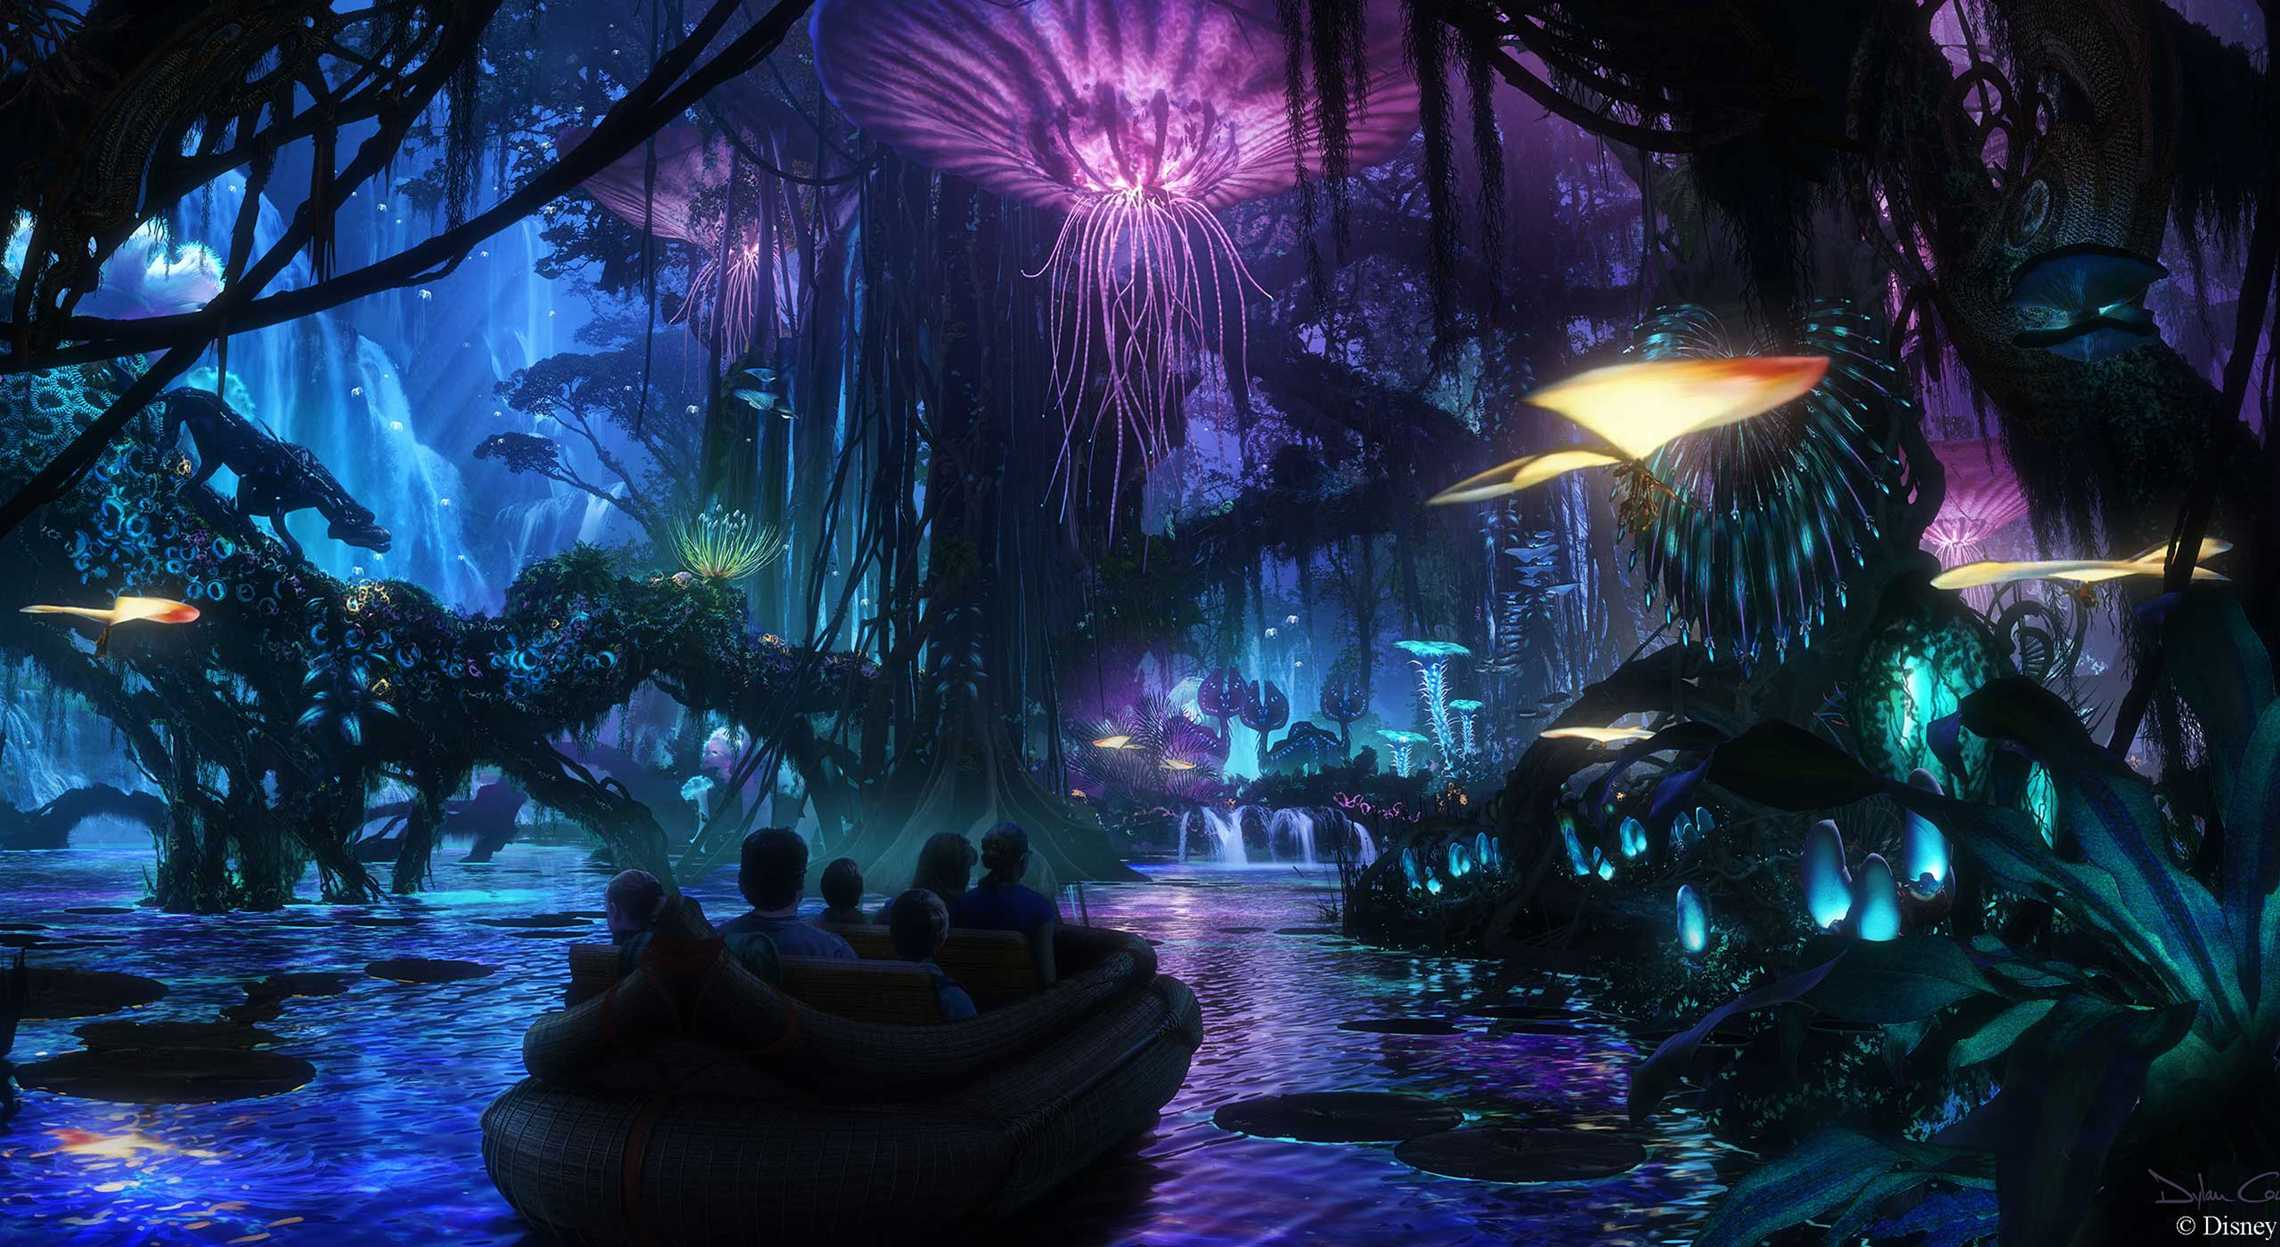 pandora-the-world-of-avatar-walt-disney-world